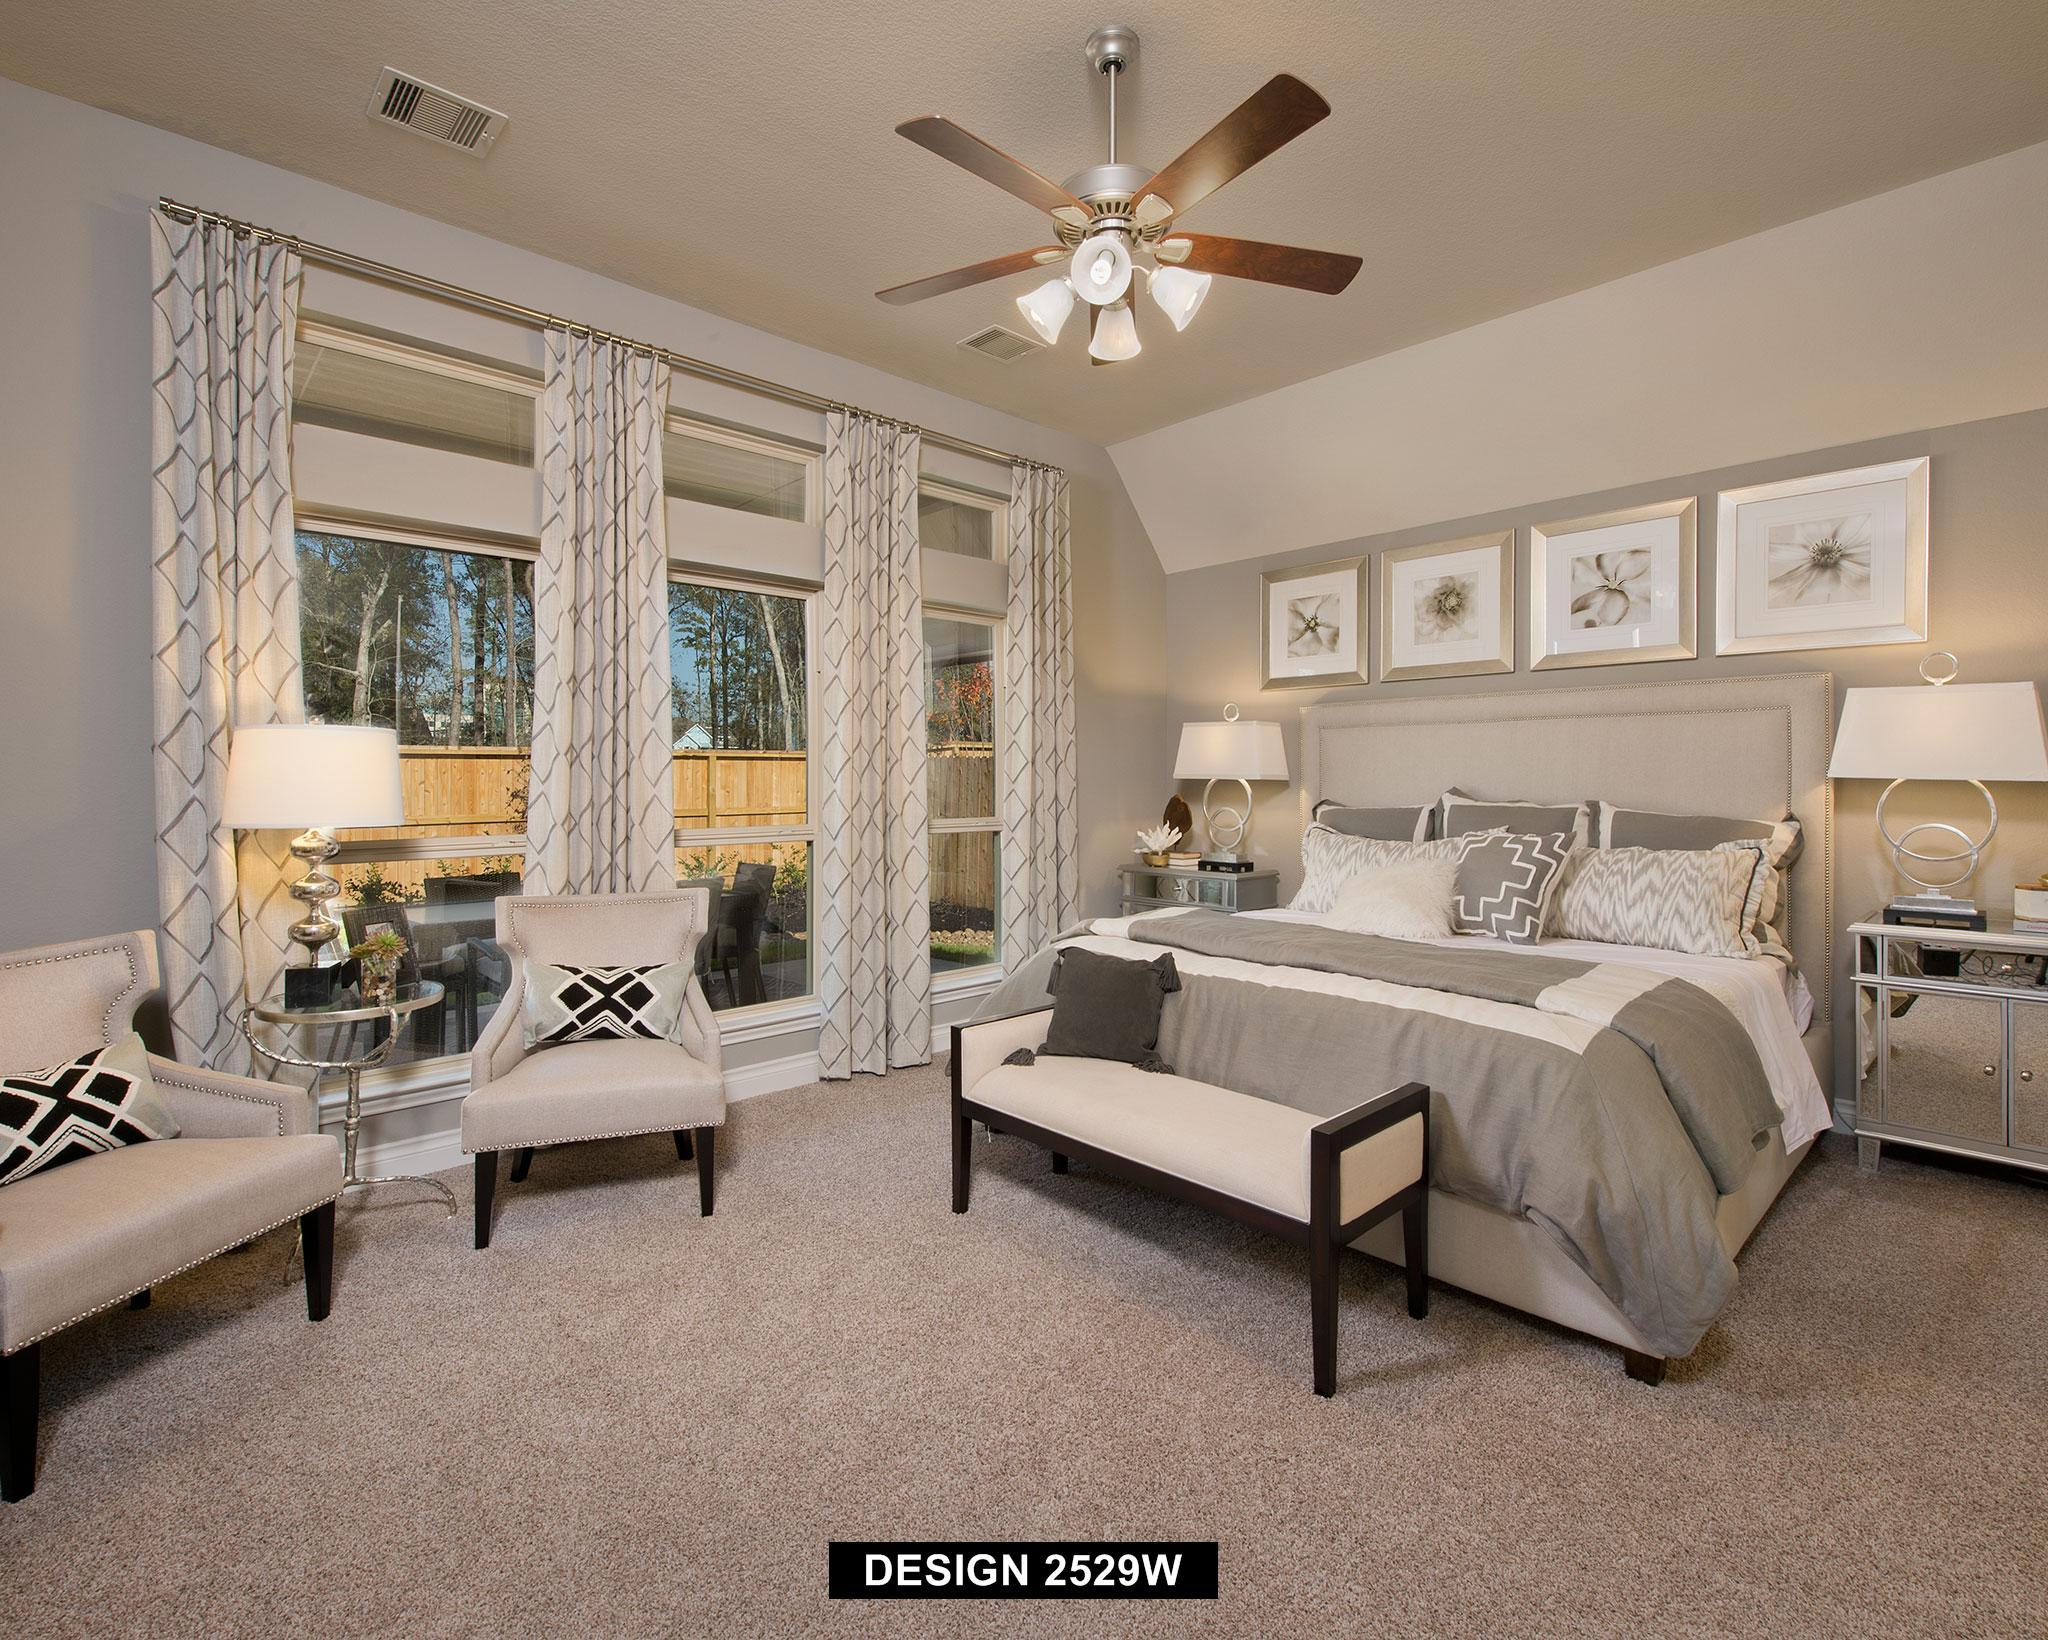 Bedroom featured in the 2529W By Perry Homes in Houston, TX